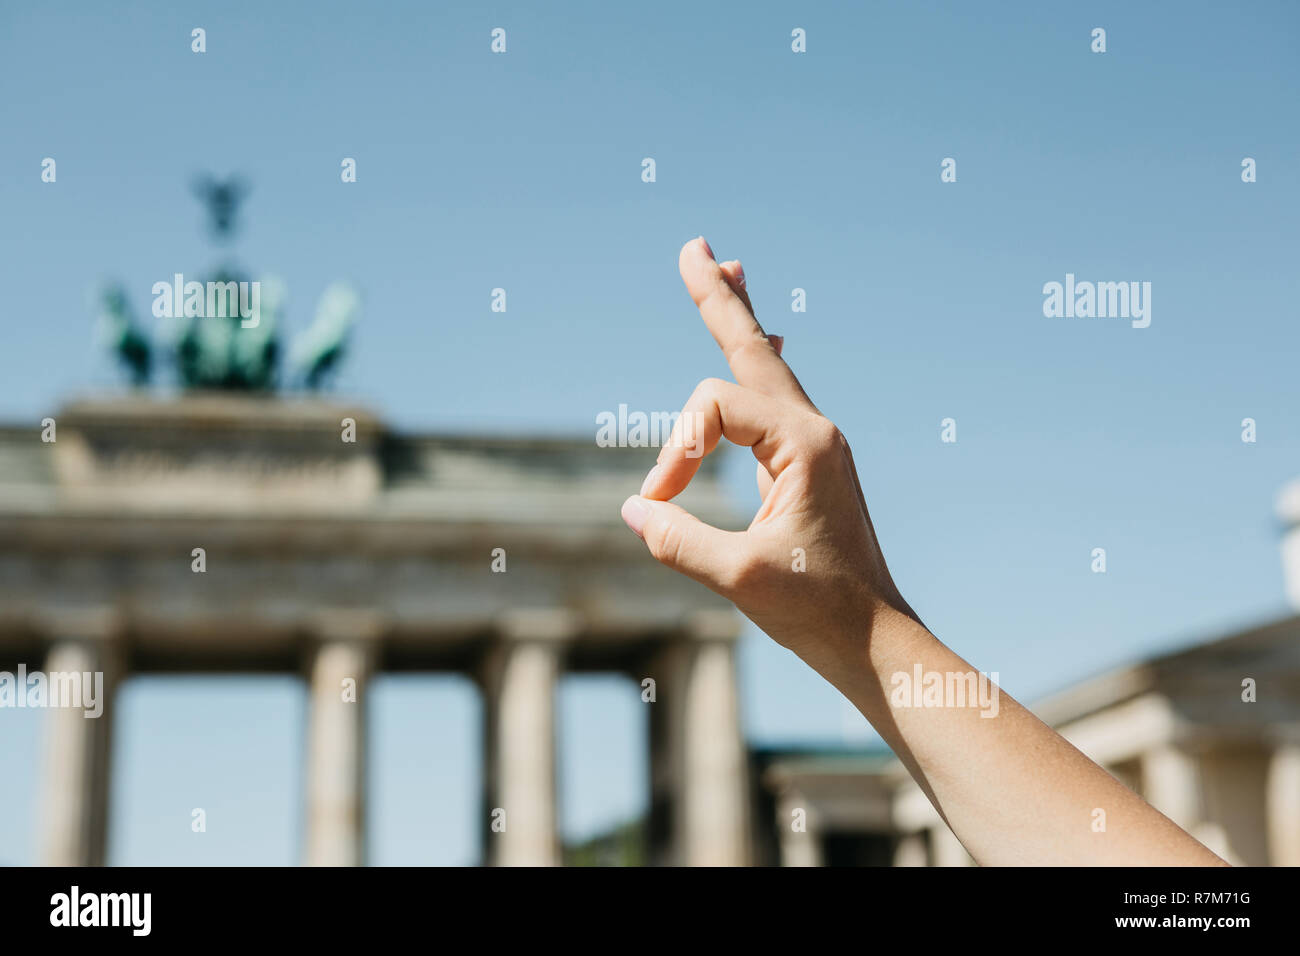 A person shows a sign with his fingers that means everything is good against the background of the Brandenburg Gate and blurry unrecognizable people in Berlin in Germany. - Stock Image